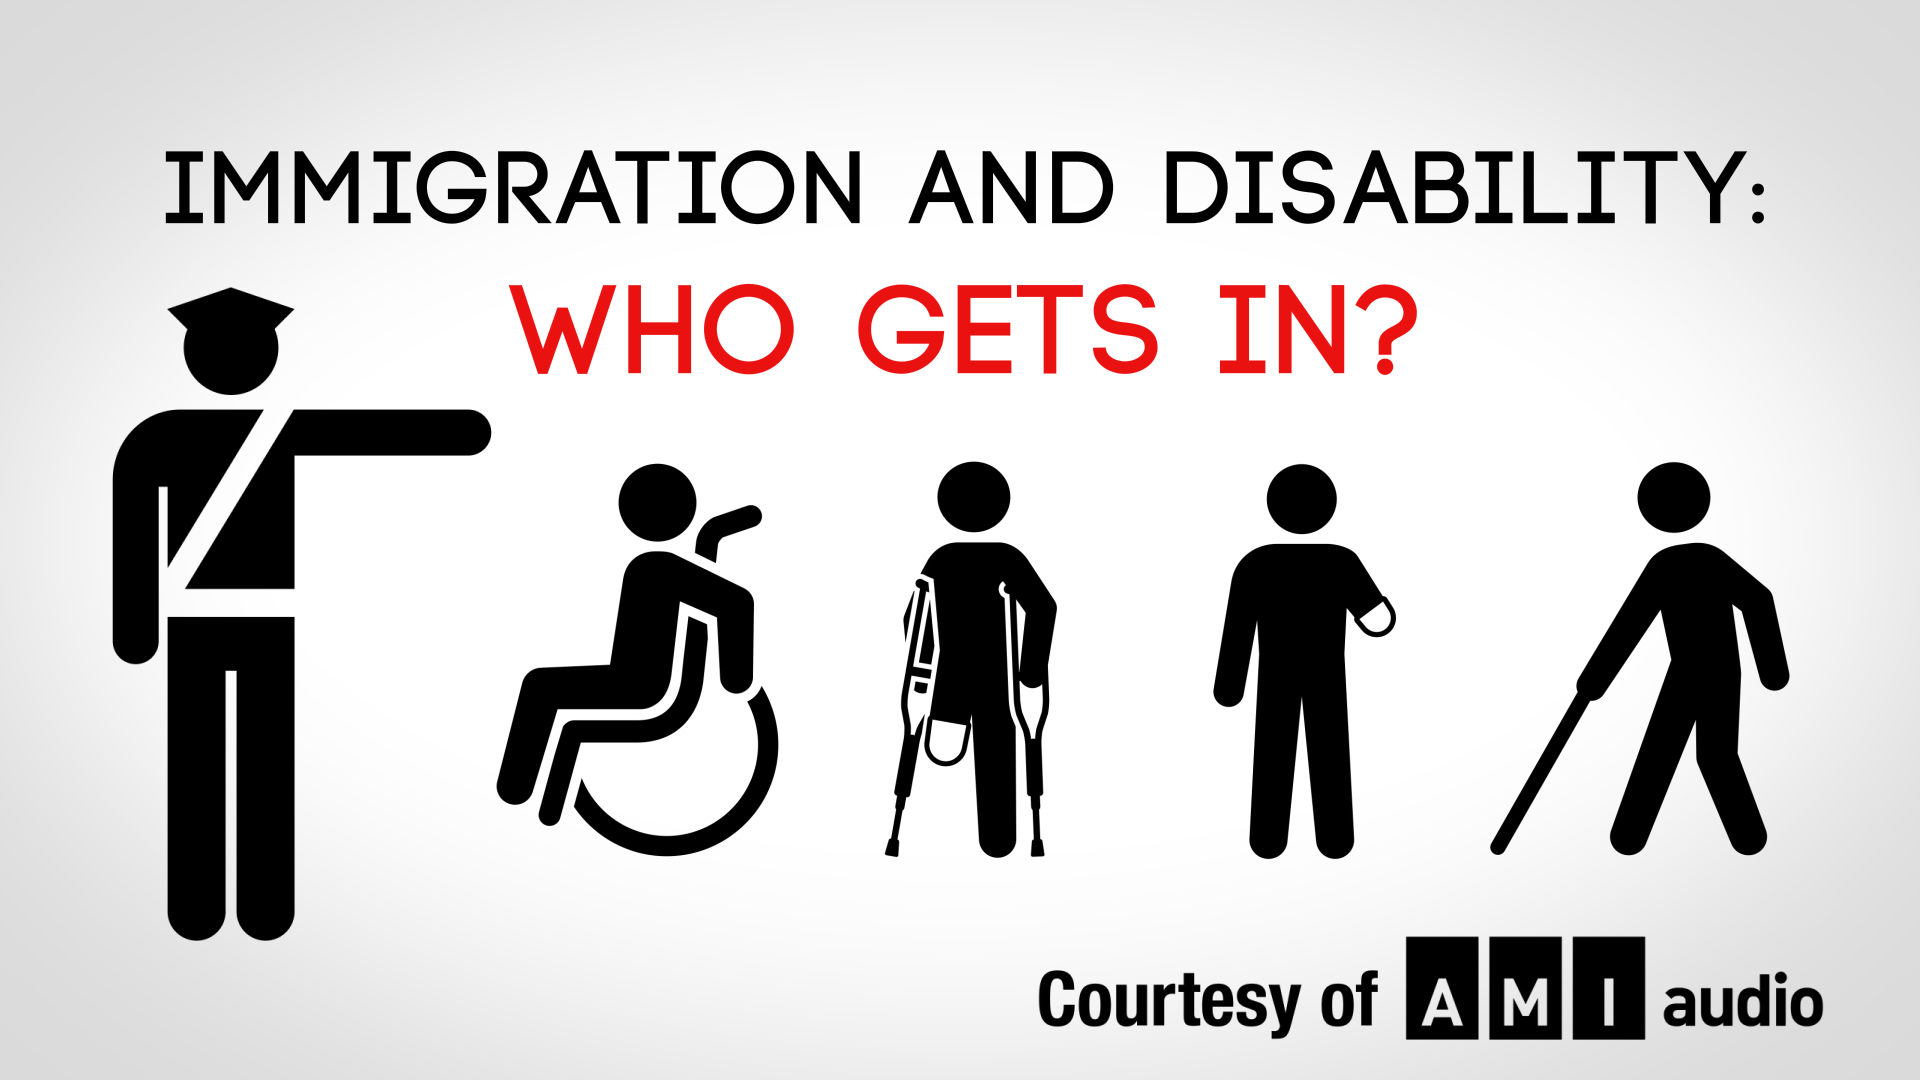 Text: Immigration and Disability: Who Gets In?